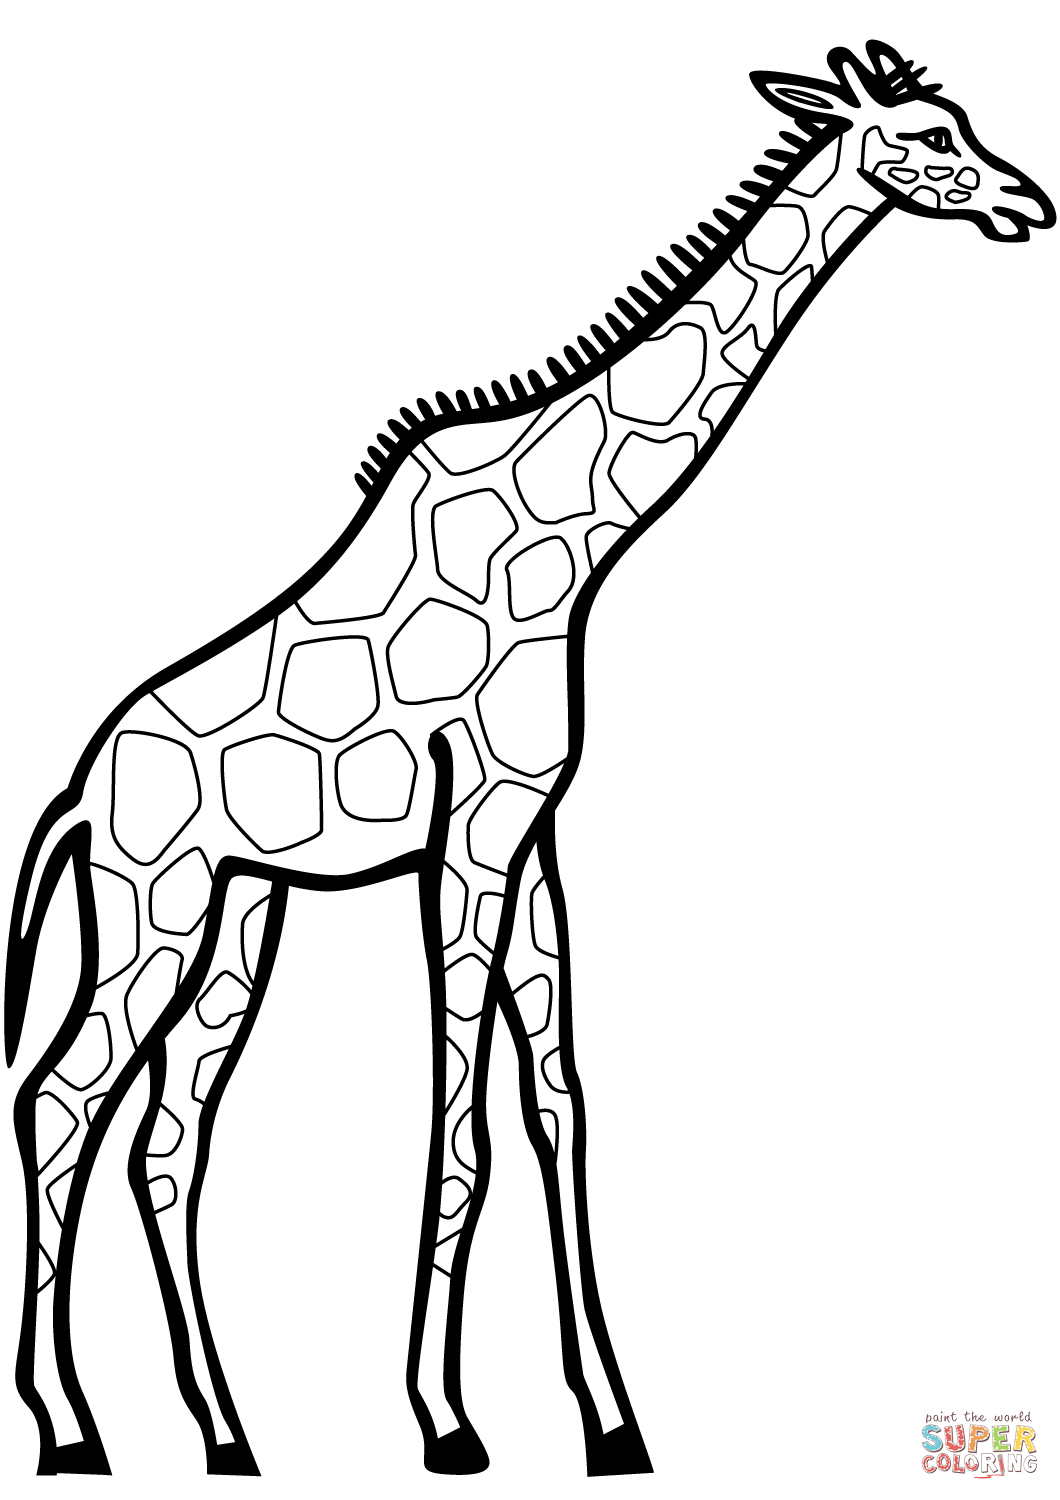 1060x1500 Giraffe Coloring Page Free Printable Coloring Pages